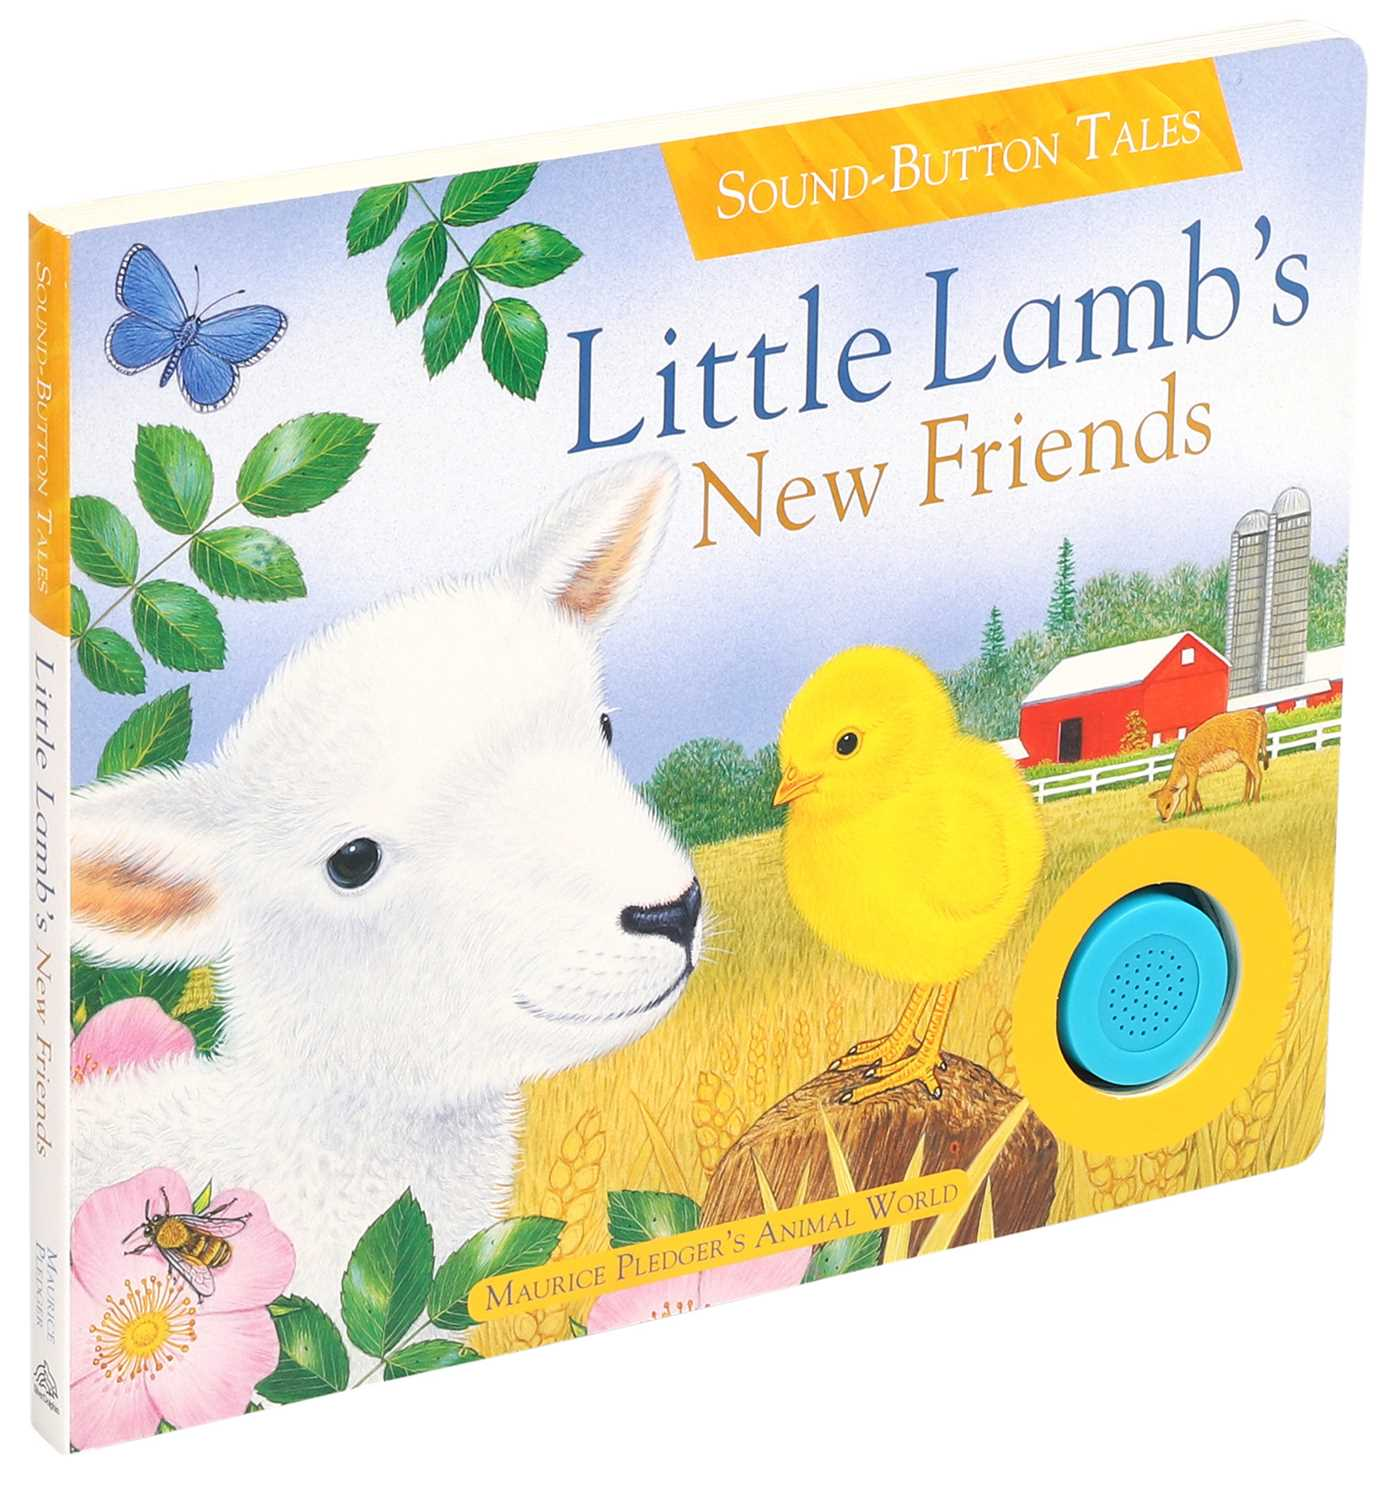 Little lambs new friends 9781626869400 hr